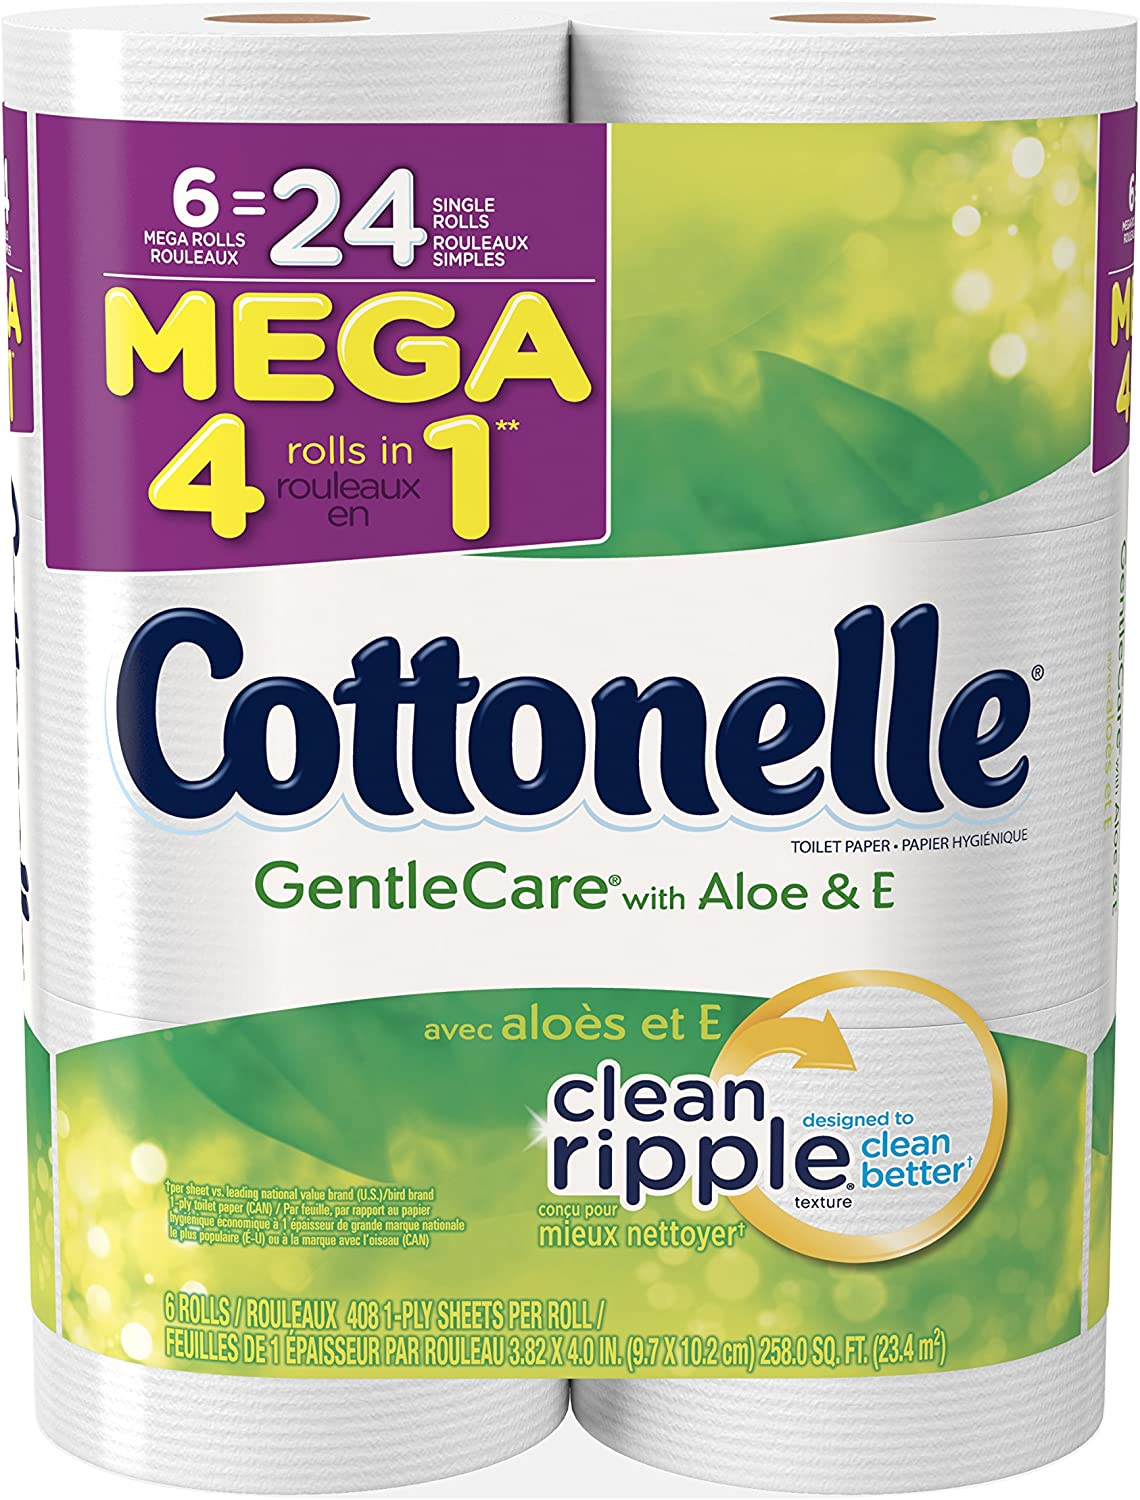 Cottonelle Gentle Care Toilet Paper, Sensitive Bath Tissue, Aloe & Vitamin E, 6 Mega Toilet Paper Rolls